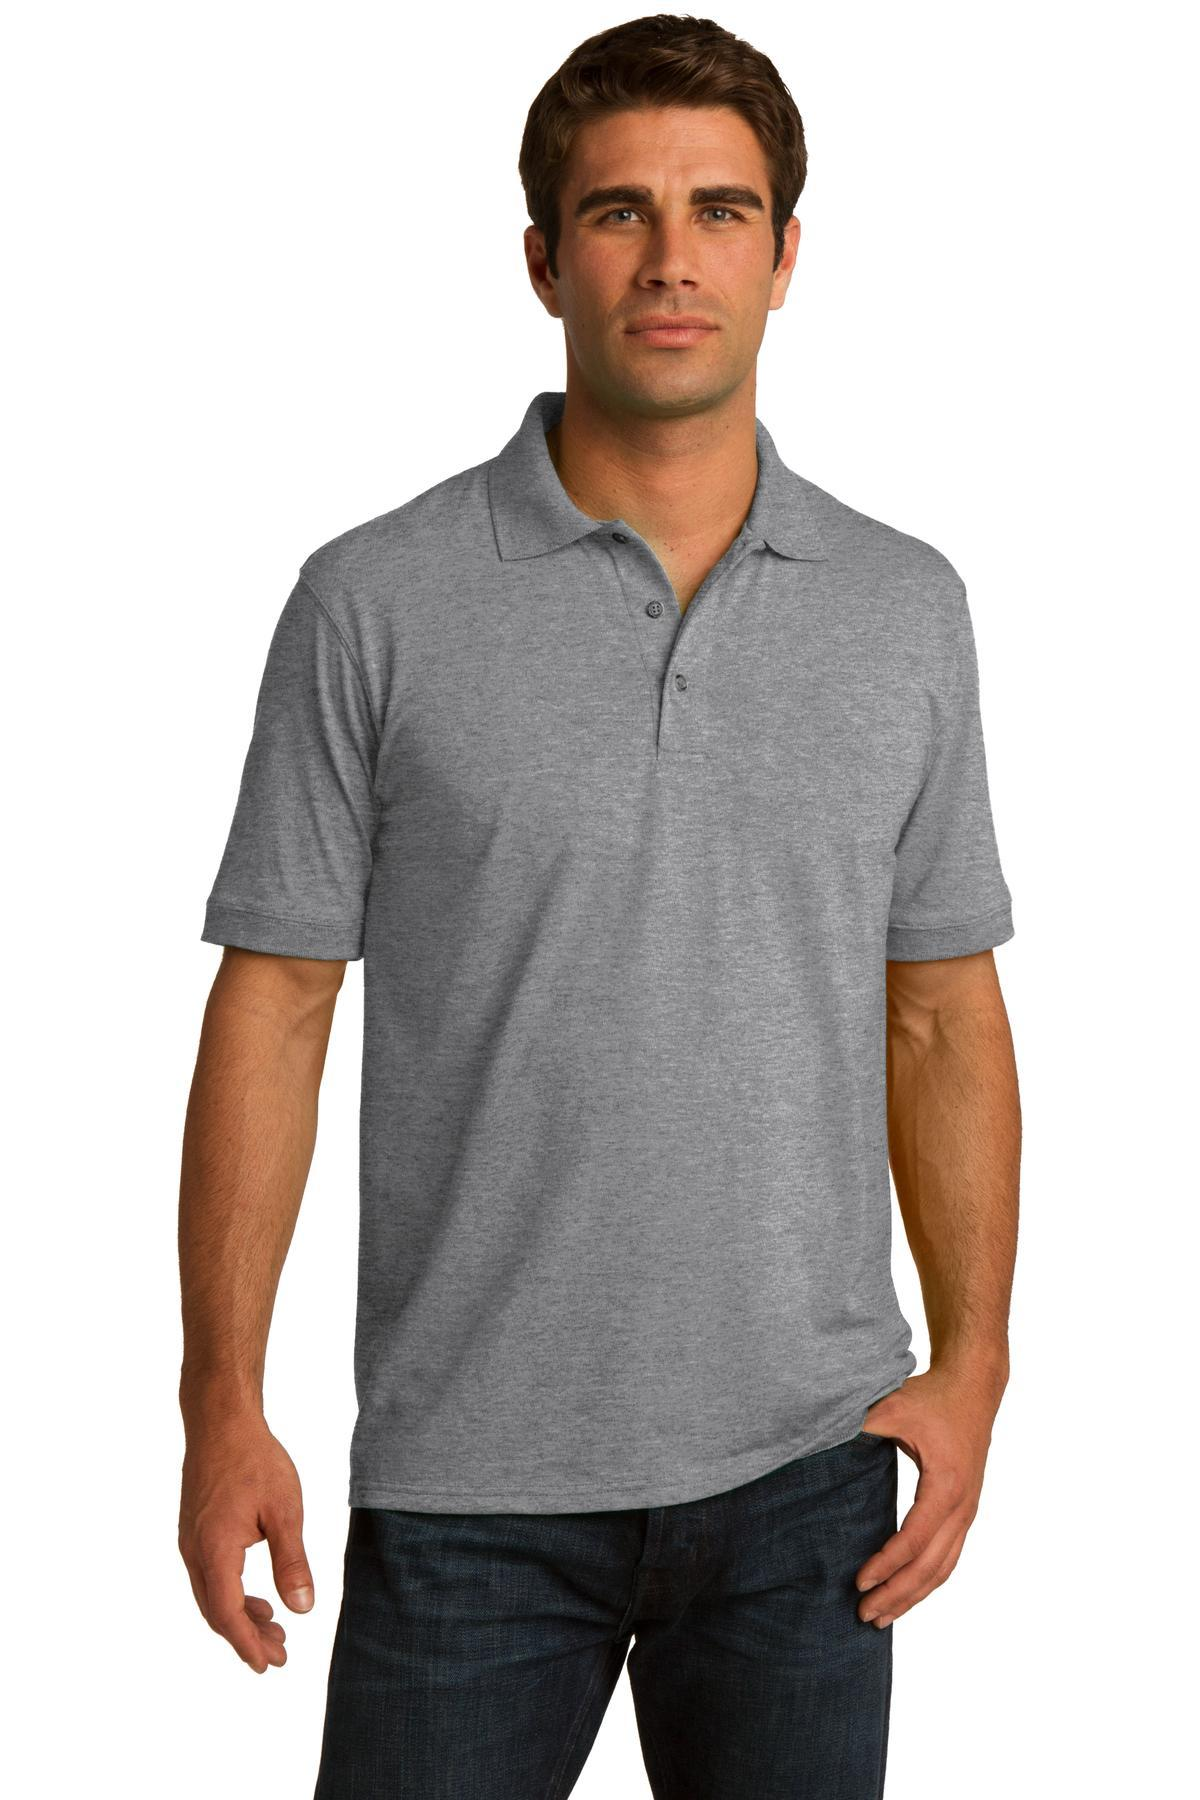 Athletic Heather - Port & Company KP55T